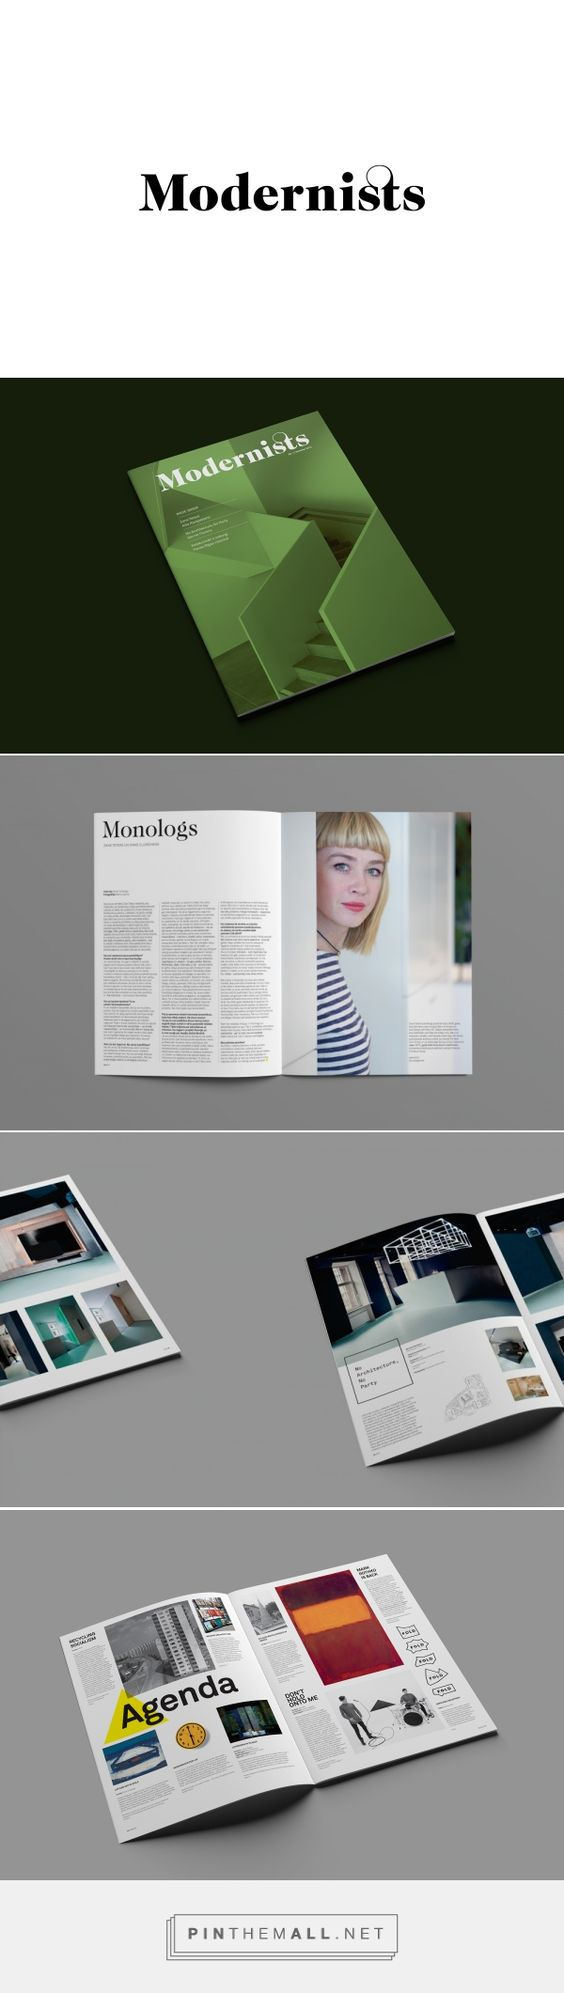 Modernists — Associates, Partners et Sons — Associates, Partners et Sons is a design studio based in Riga, Latvia. It was formed by Edgars Zvirgzdiņš in 2011. Studio currently is working on a diverse range of projects across various media for clients in finance, culture & architecture. - created via http://pinthemall.net